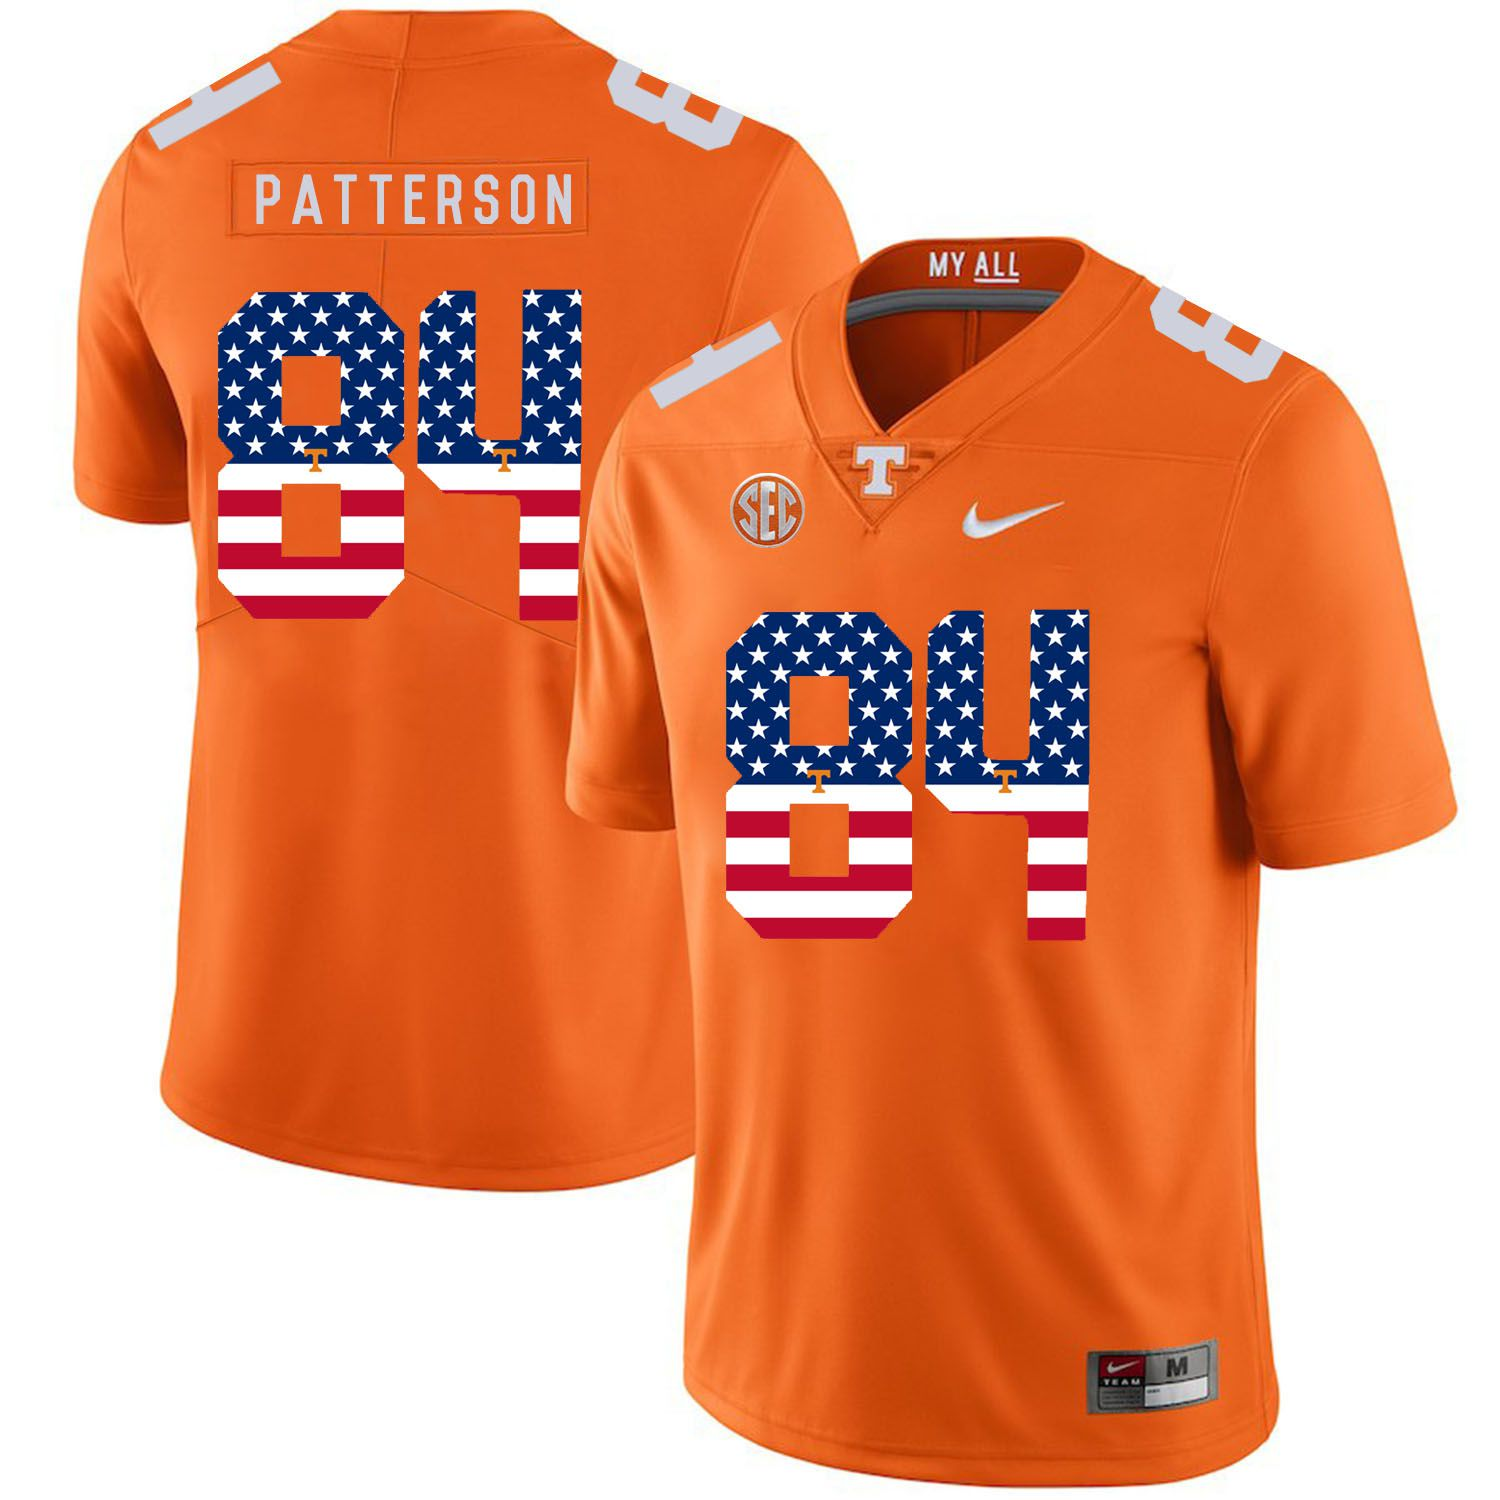 Men Tennessee Volunteers 84 Patterson Orange Flag Customized NCAA Jerseys